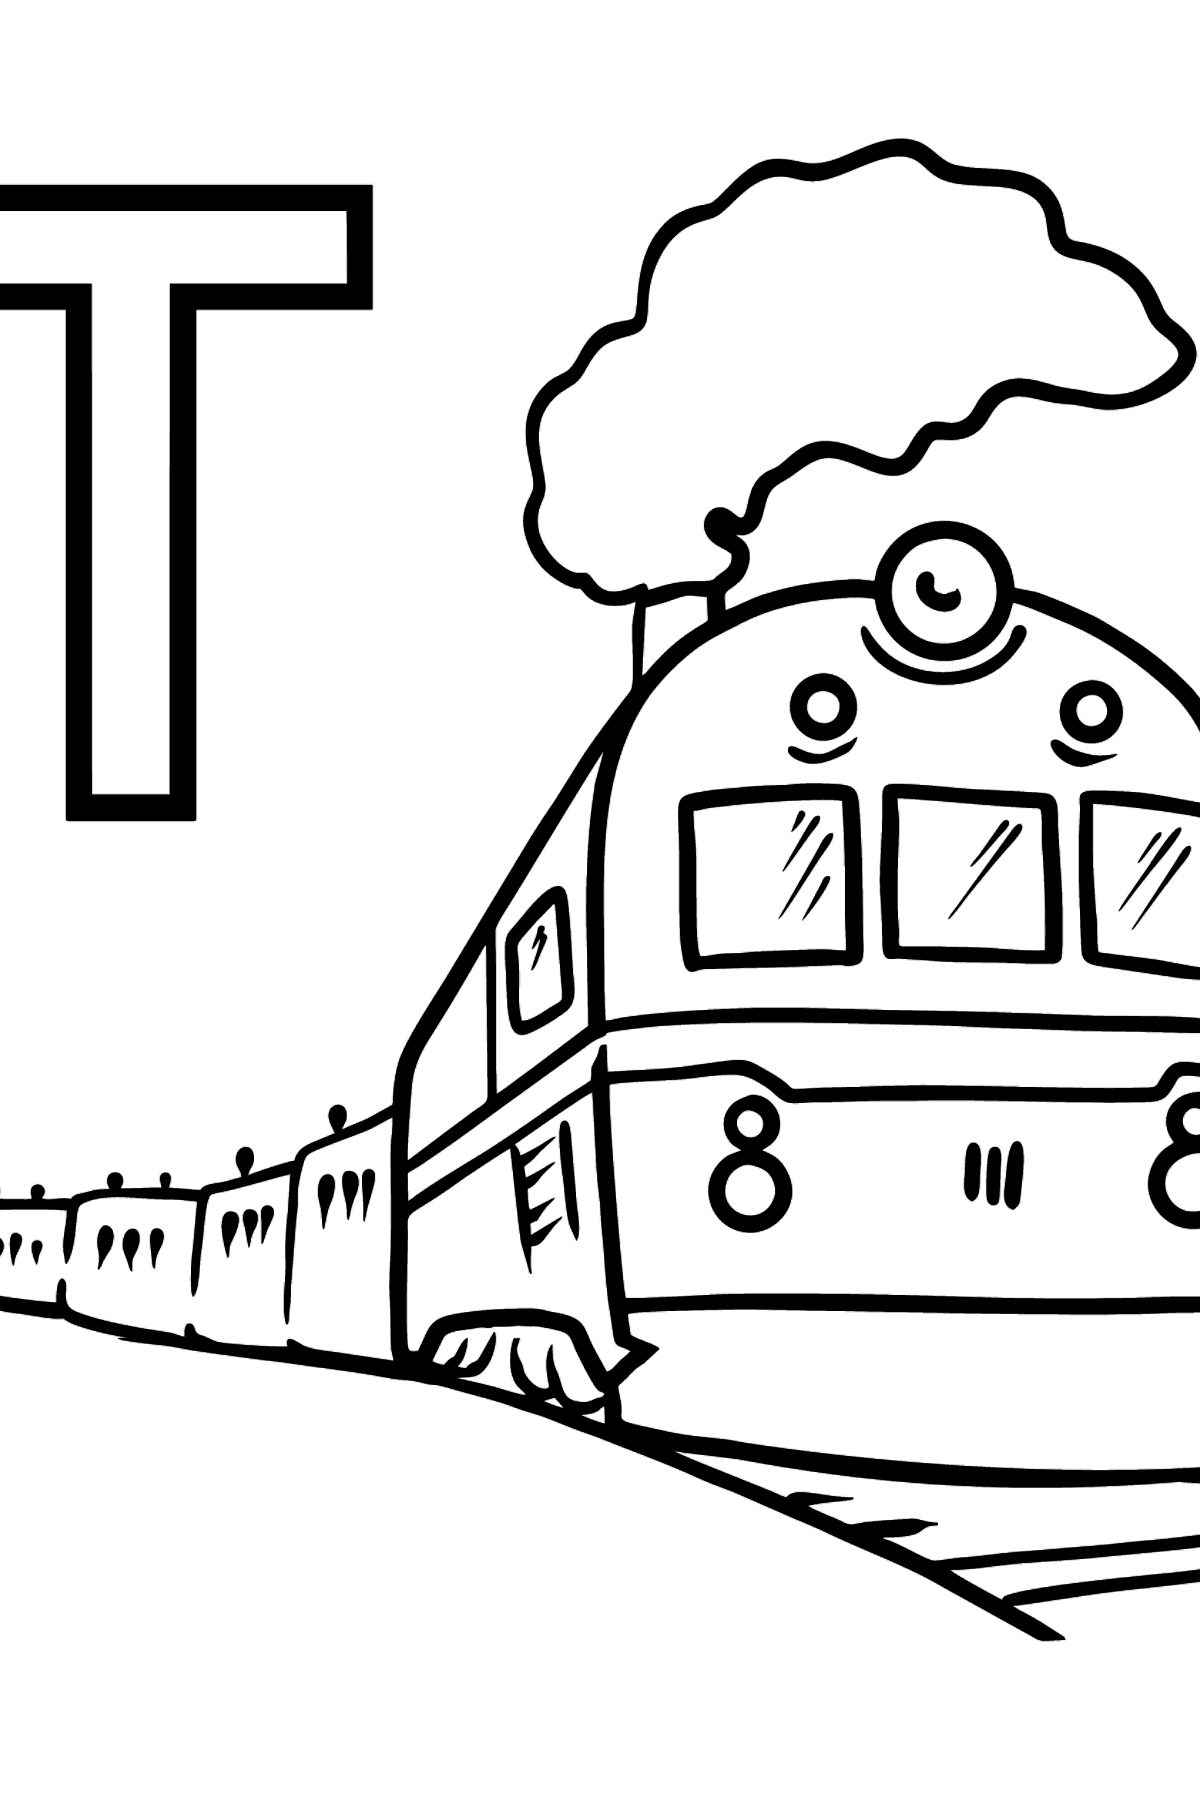 French Letter T coloring pages - TRAIN - Coloring Pages for Kids